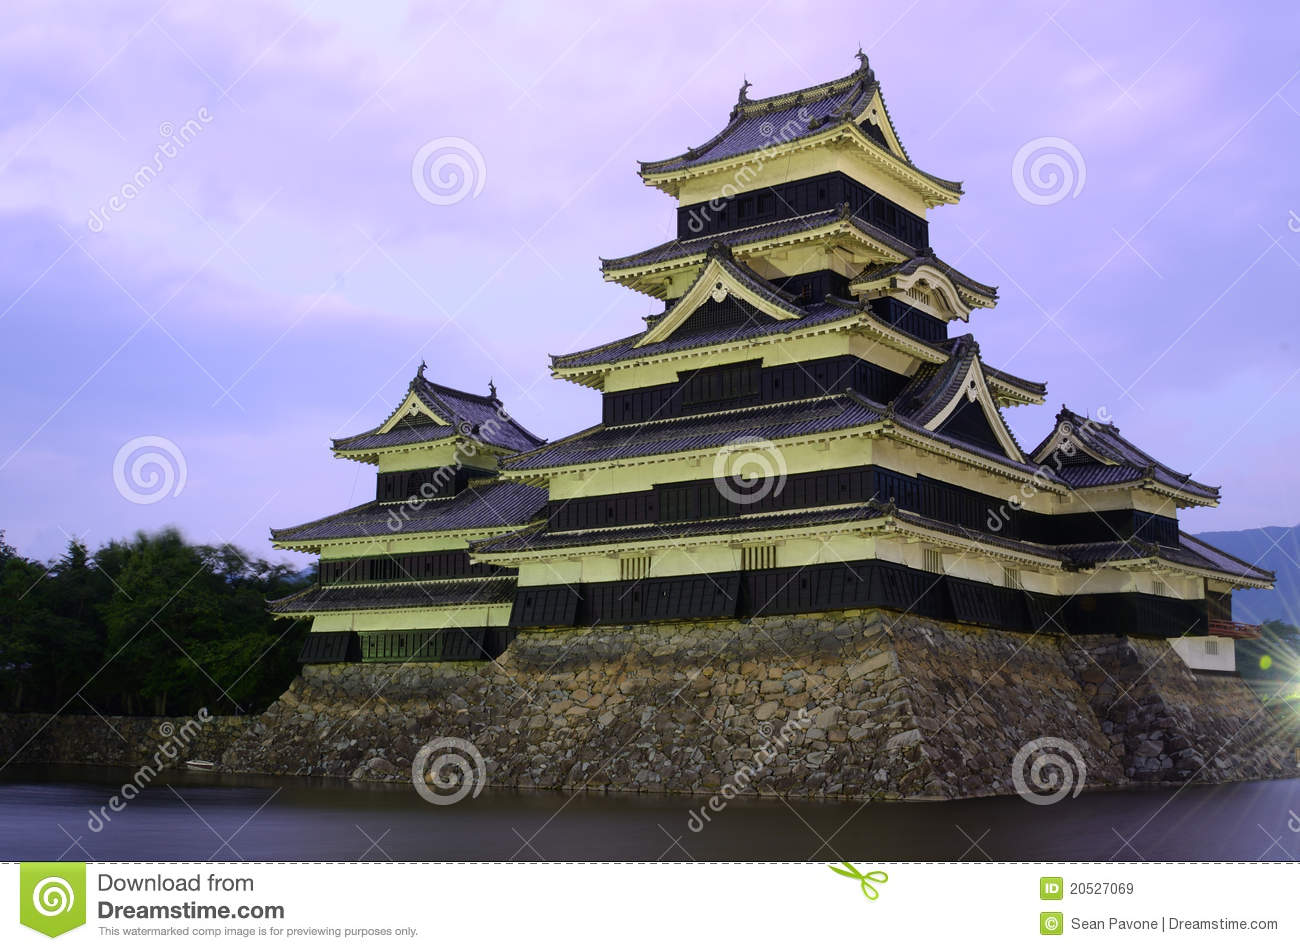 Matsumoto Castle In Matsumoto, Japan Royalty Free Stock Images - Image: 20527069